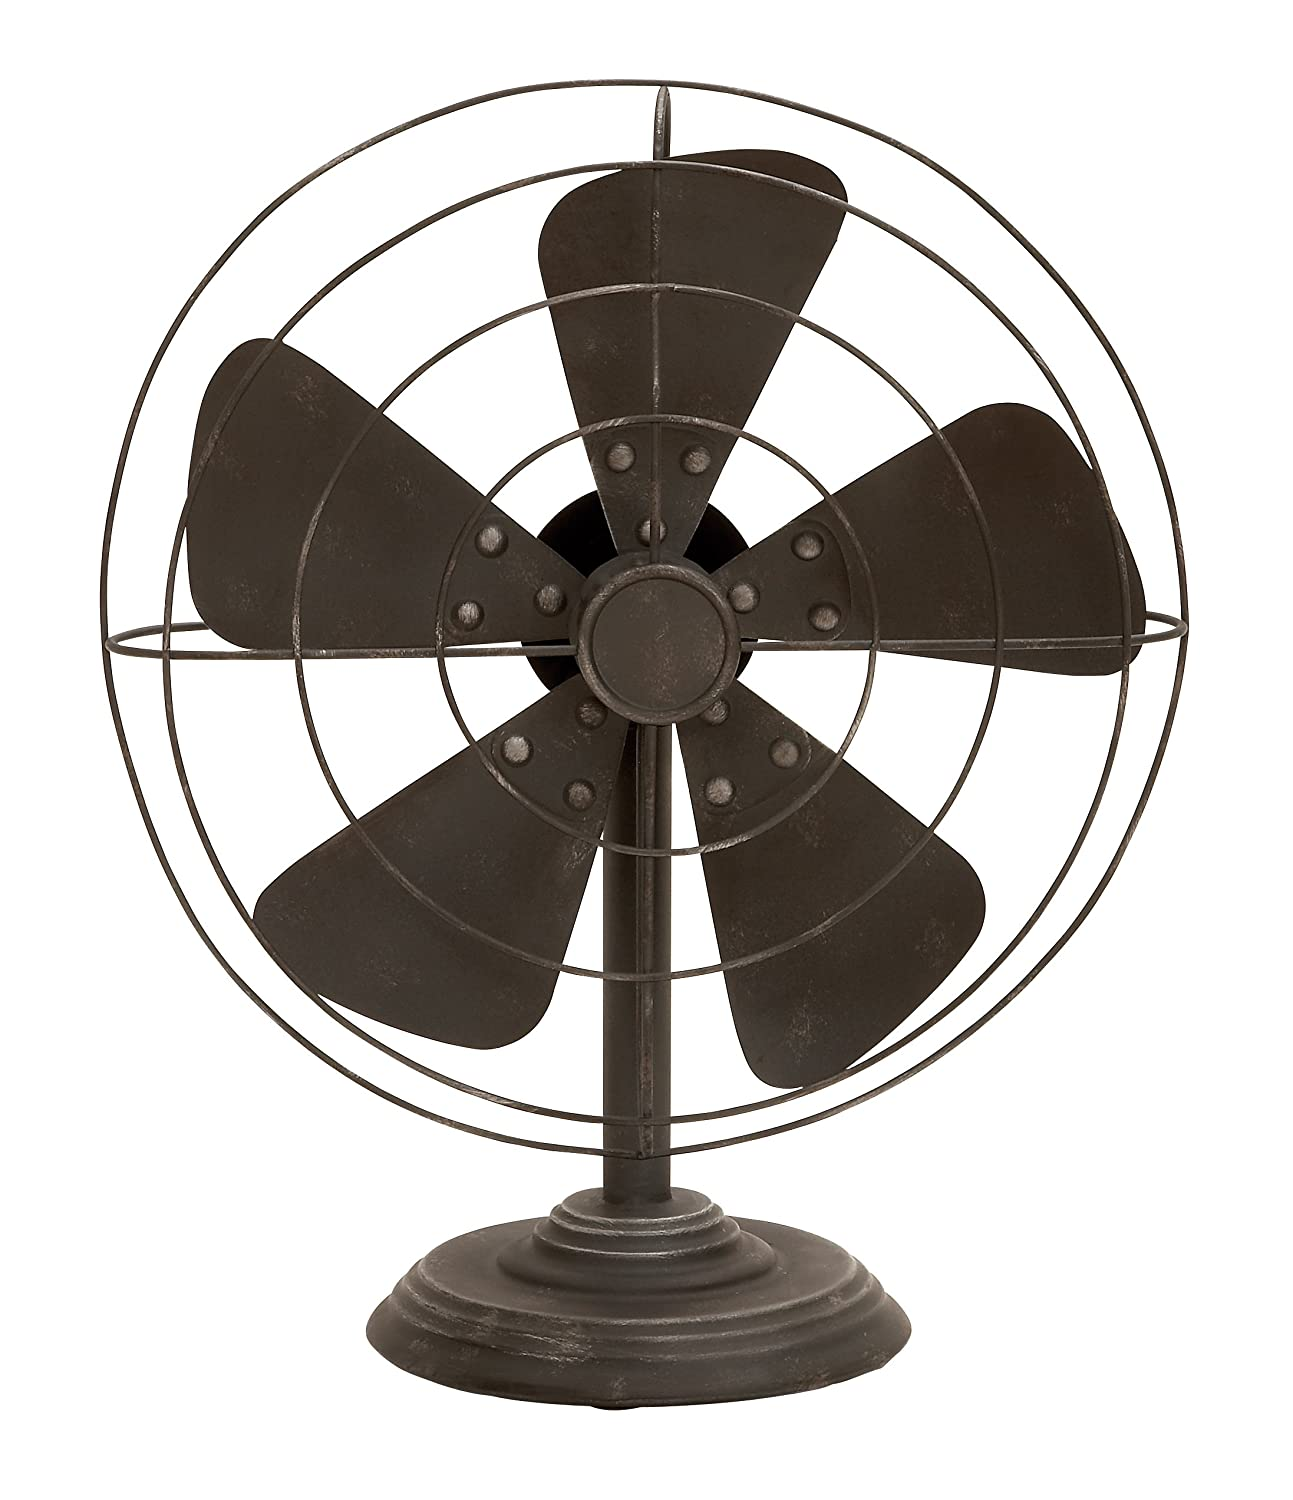 Deco 79 Rustic Non-Functional Metal Old Fan Table Decor One Size Textured Black Finish